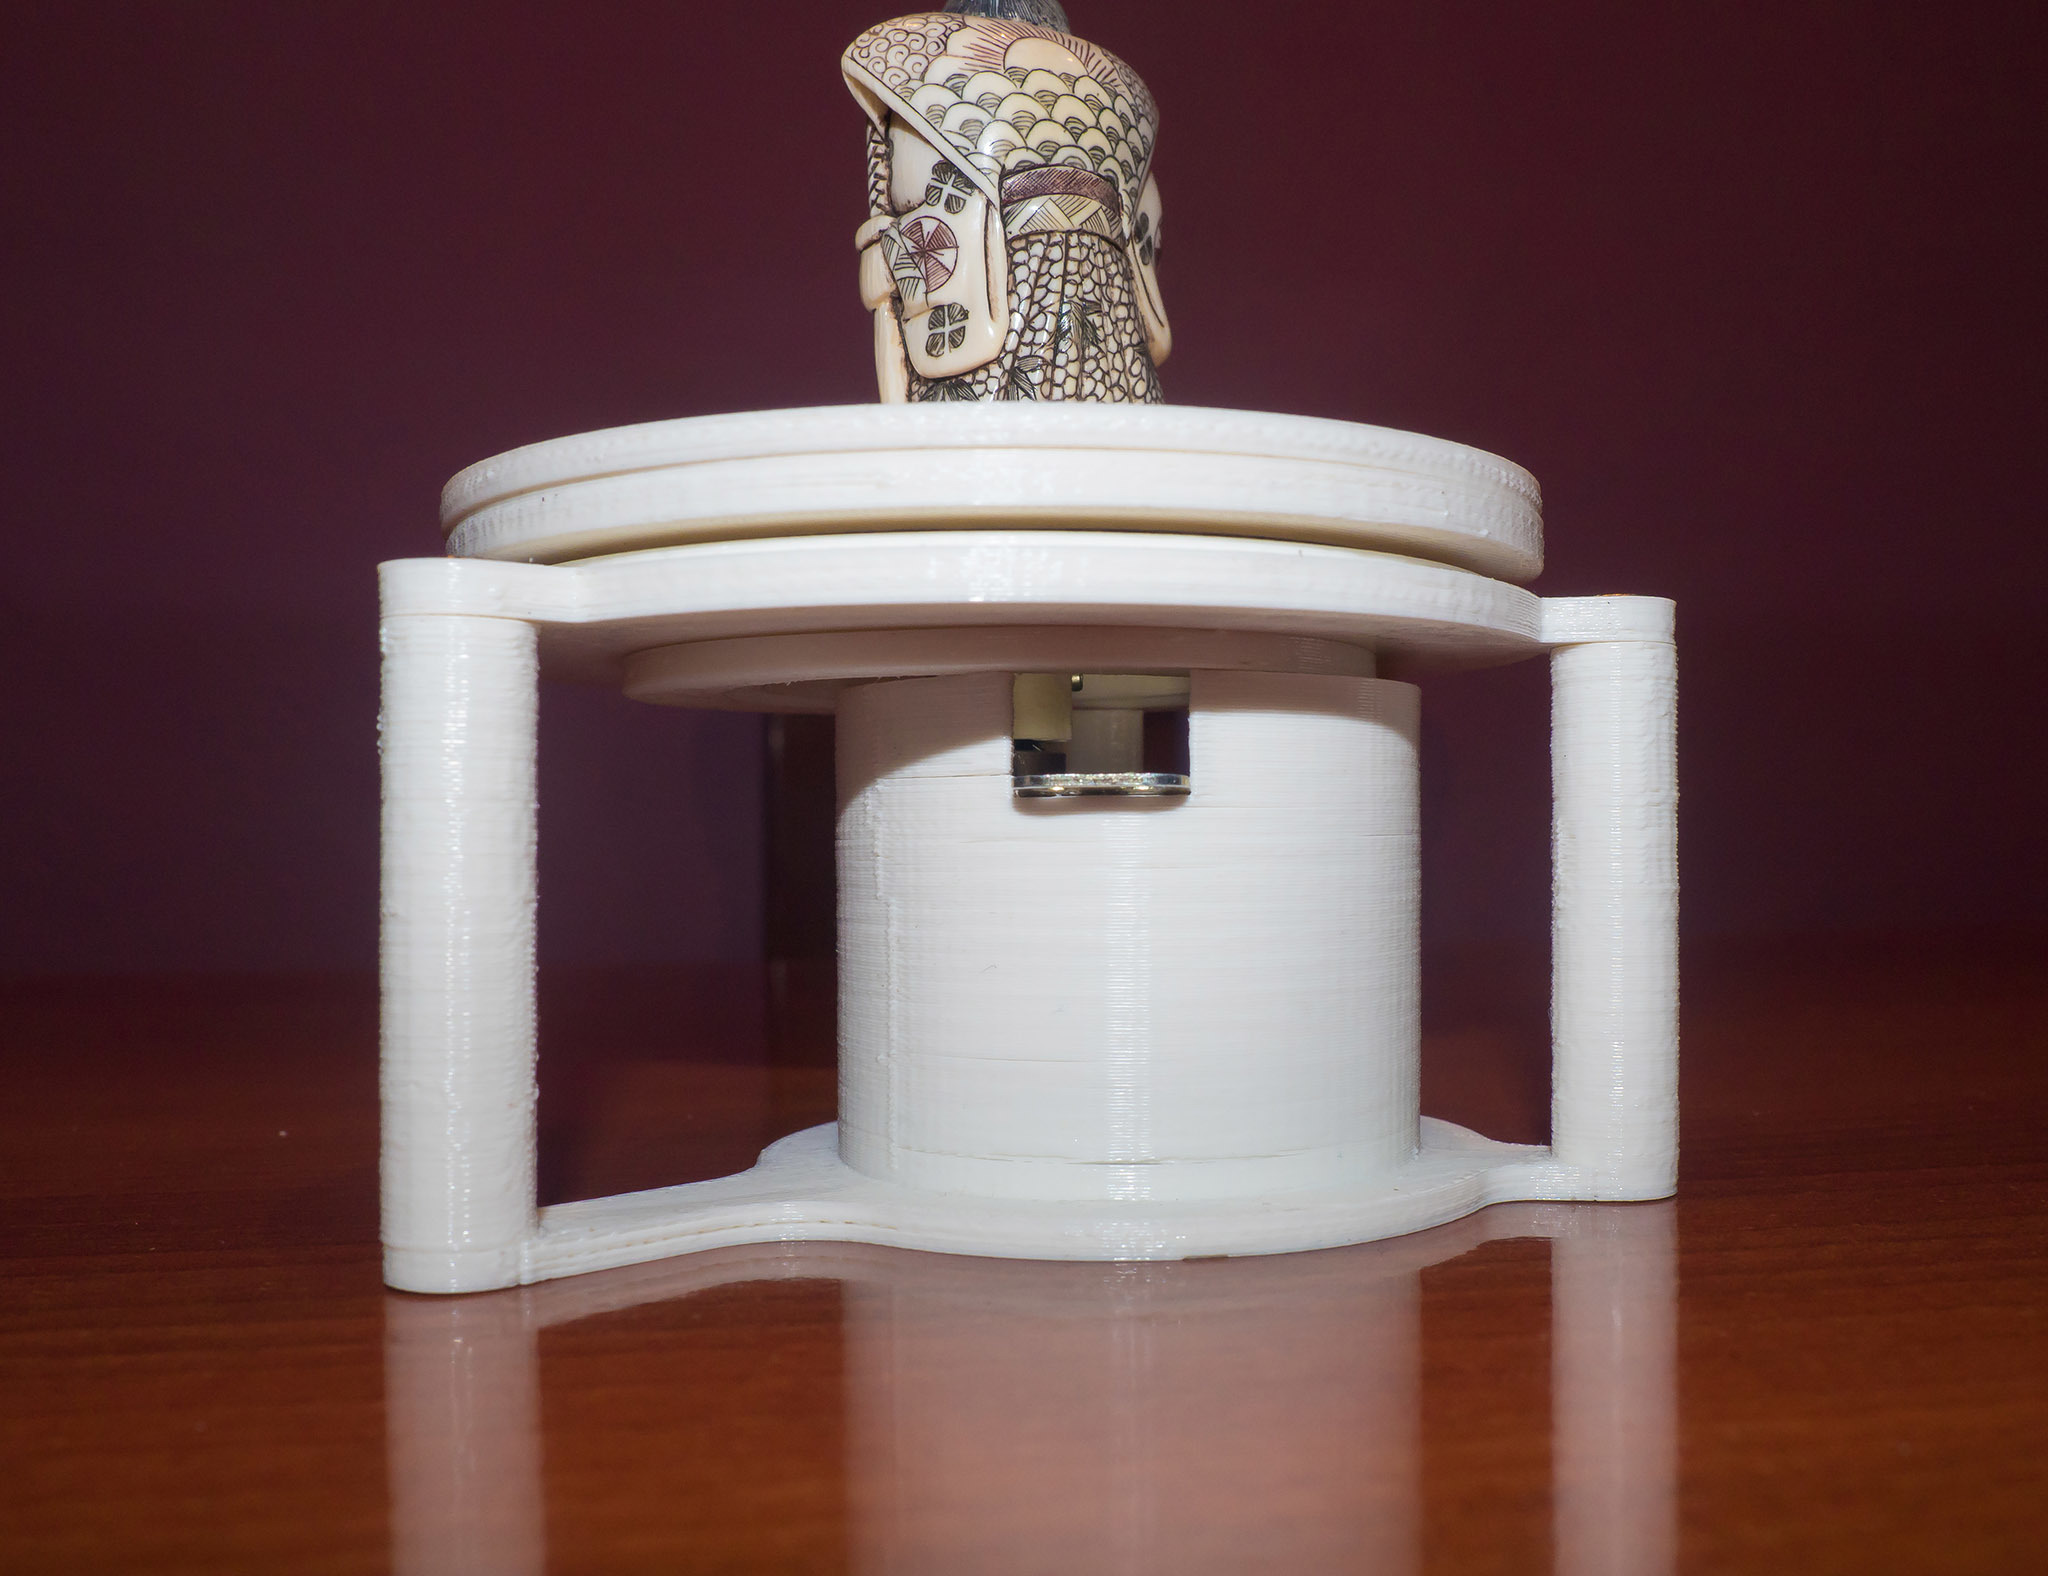 AMF00022-LR_Fin.jpg Download free STL file Motorized TurnTable with microwave motor • 3D printer object, dancingchicken